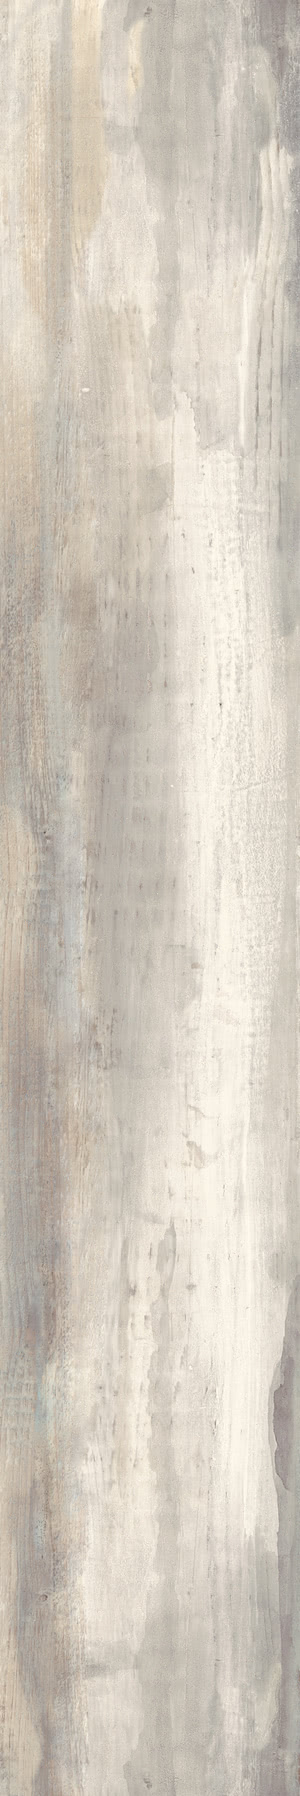 Ceramica Del Conca AR Artelegno AR 5 Grigio Rett. 20x120 , Bathroom, Living room, Public spaces, Wood effect effect, Glazed porcelain stoneware, wall & floor, Matte surface, Semi-polished surface, non-rectified edge, Rectified edge, Shade variation V4